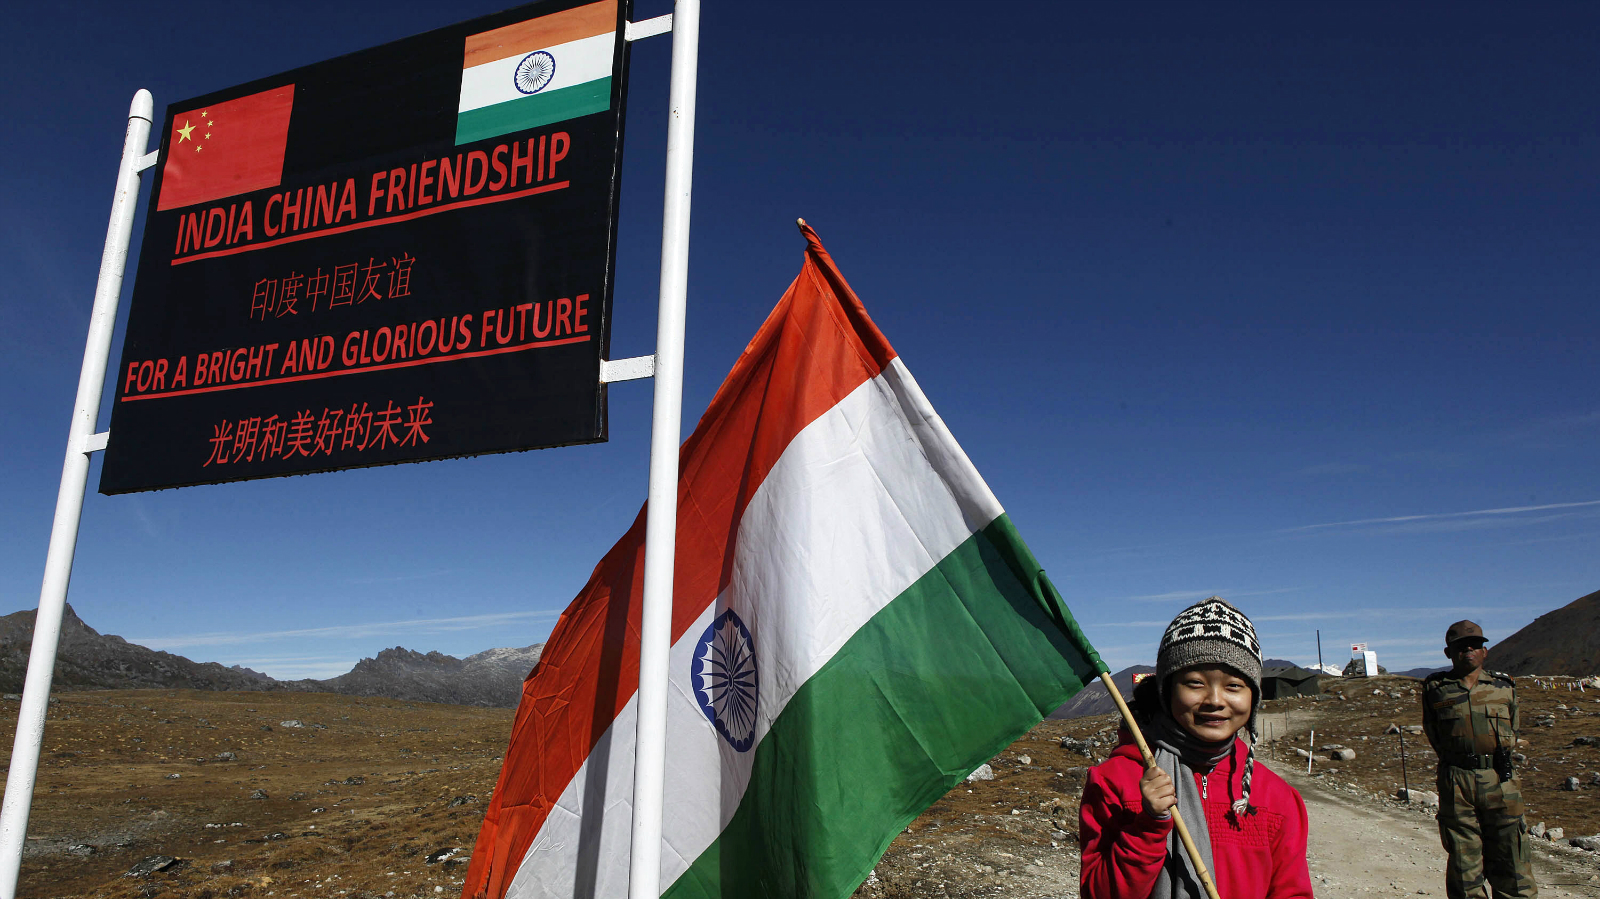 China's outrageous offer to India for settling the border dispute: Give us all the territory